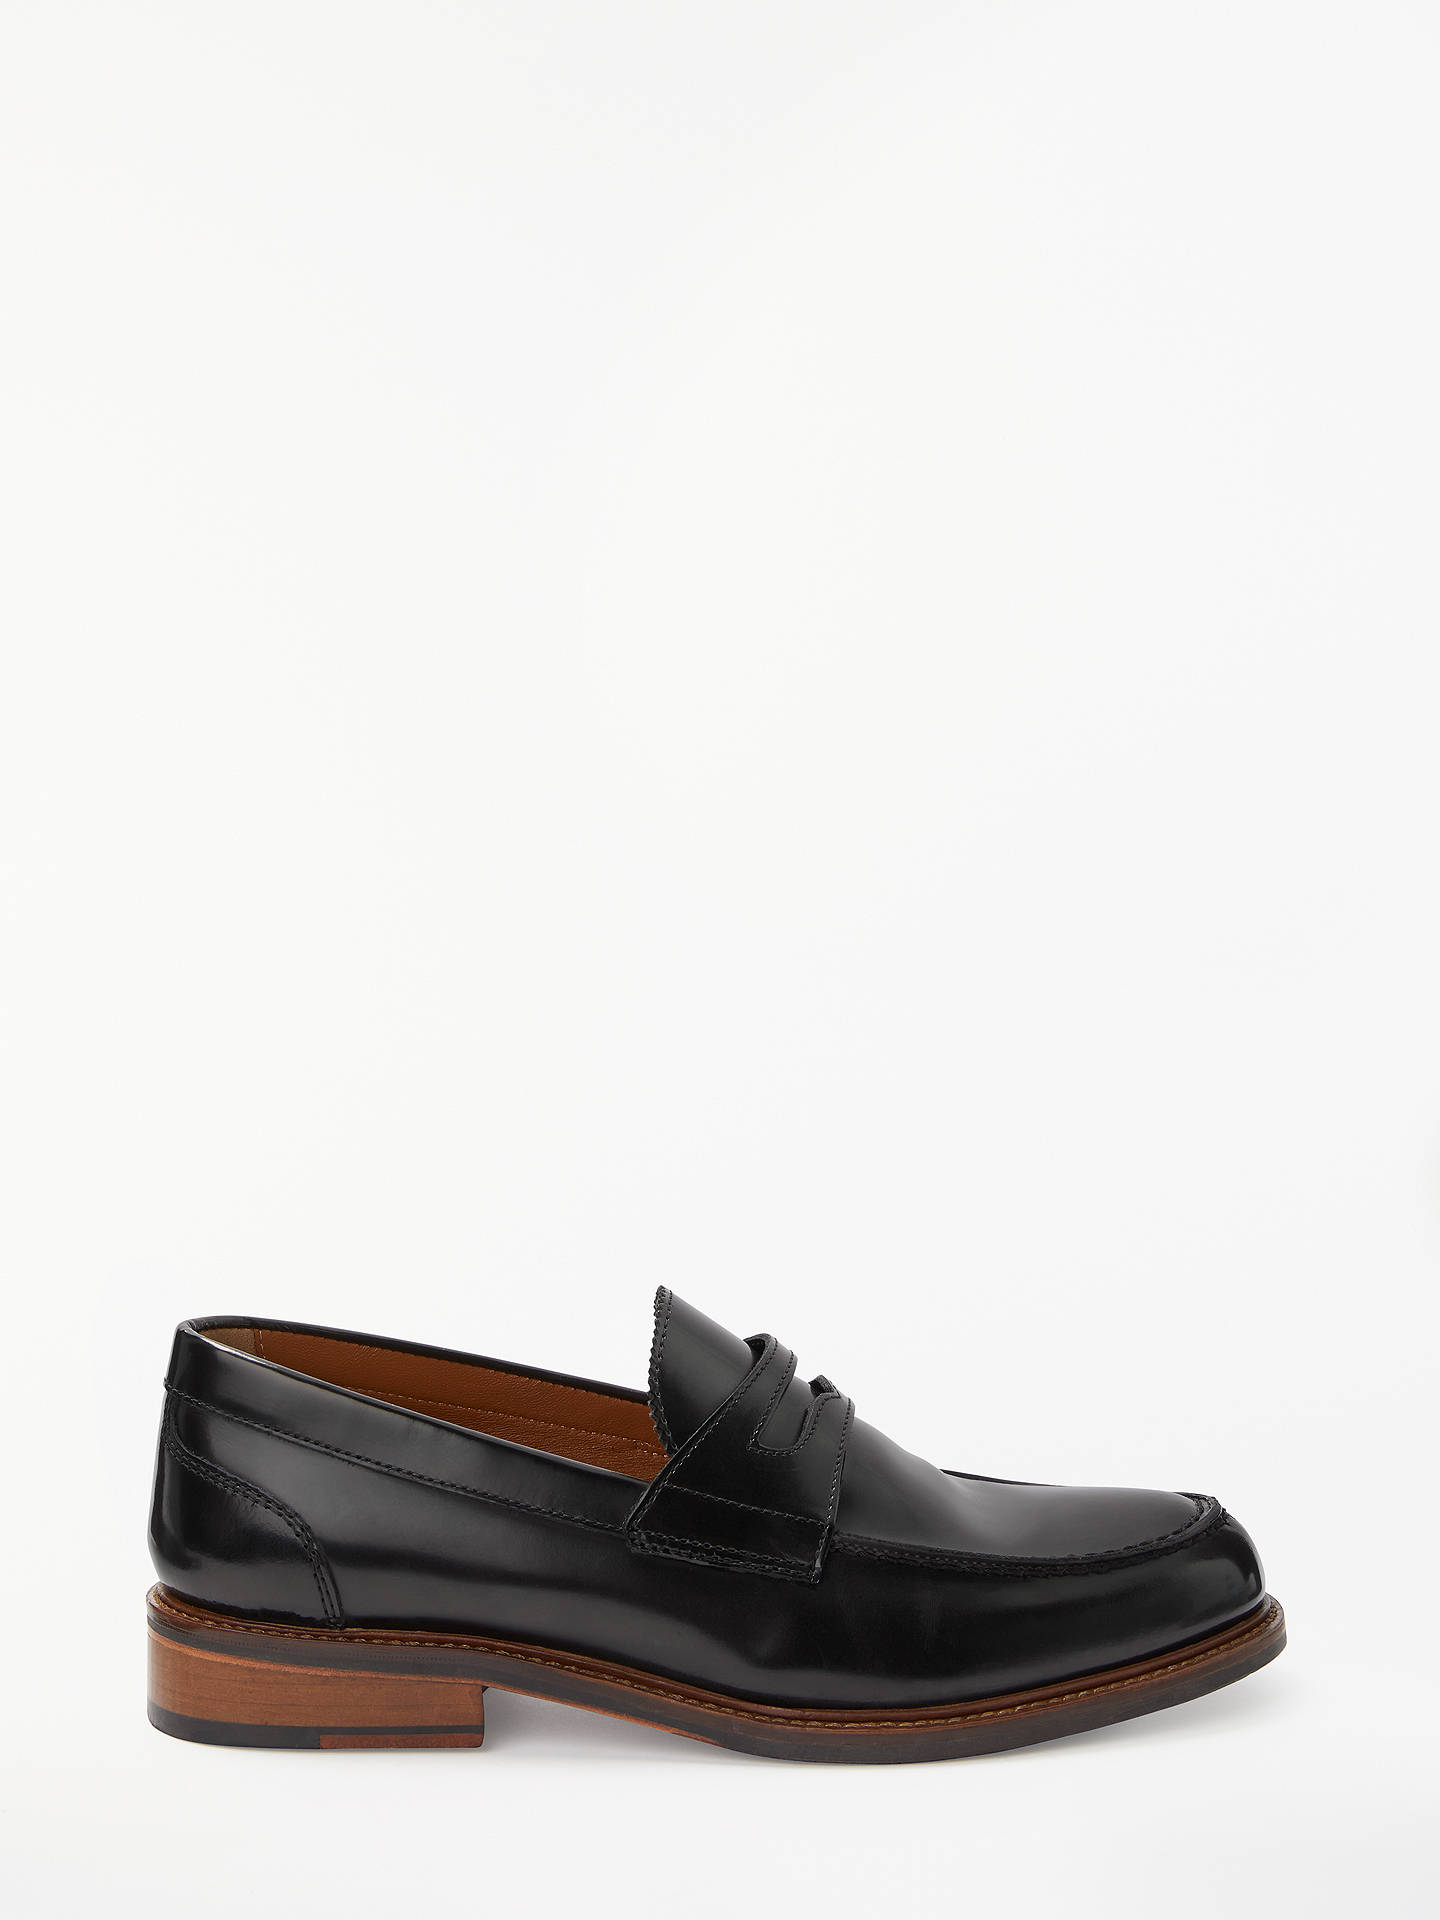 BuyJohn Lewis & Partners Duke Loafers, Black, 9 Online at johnlewis.com